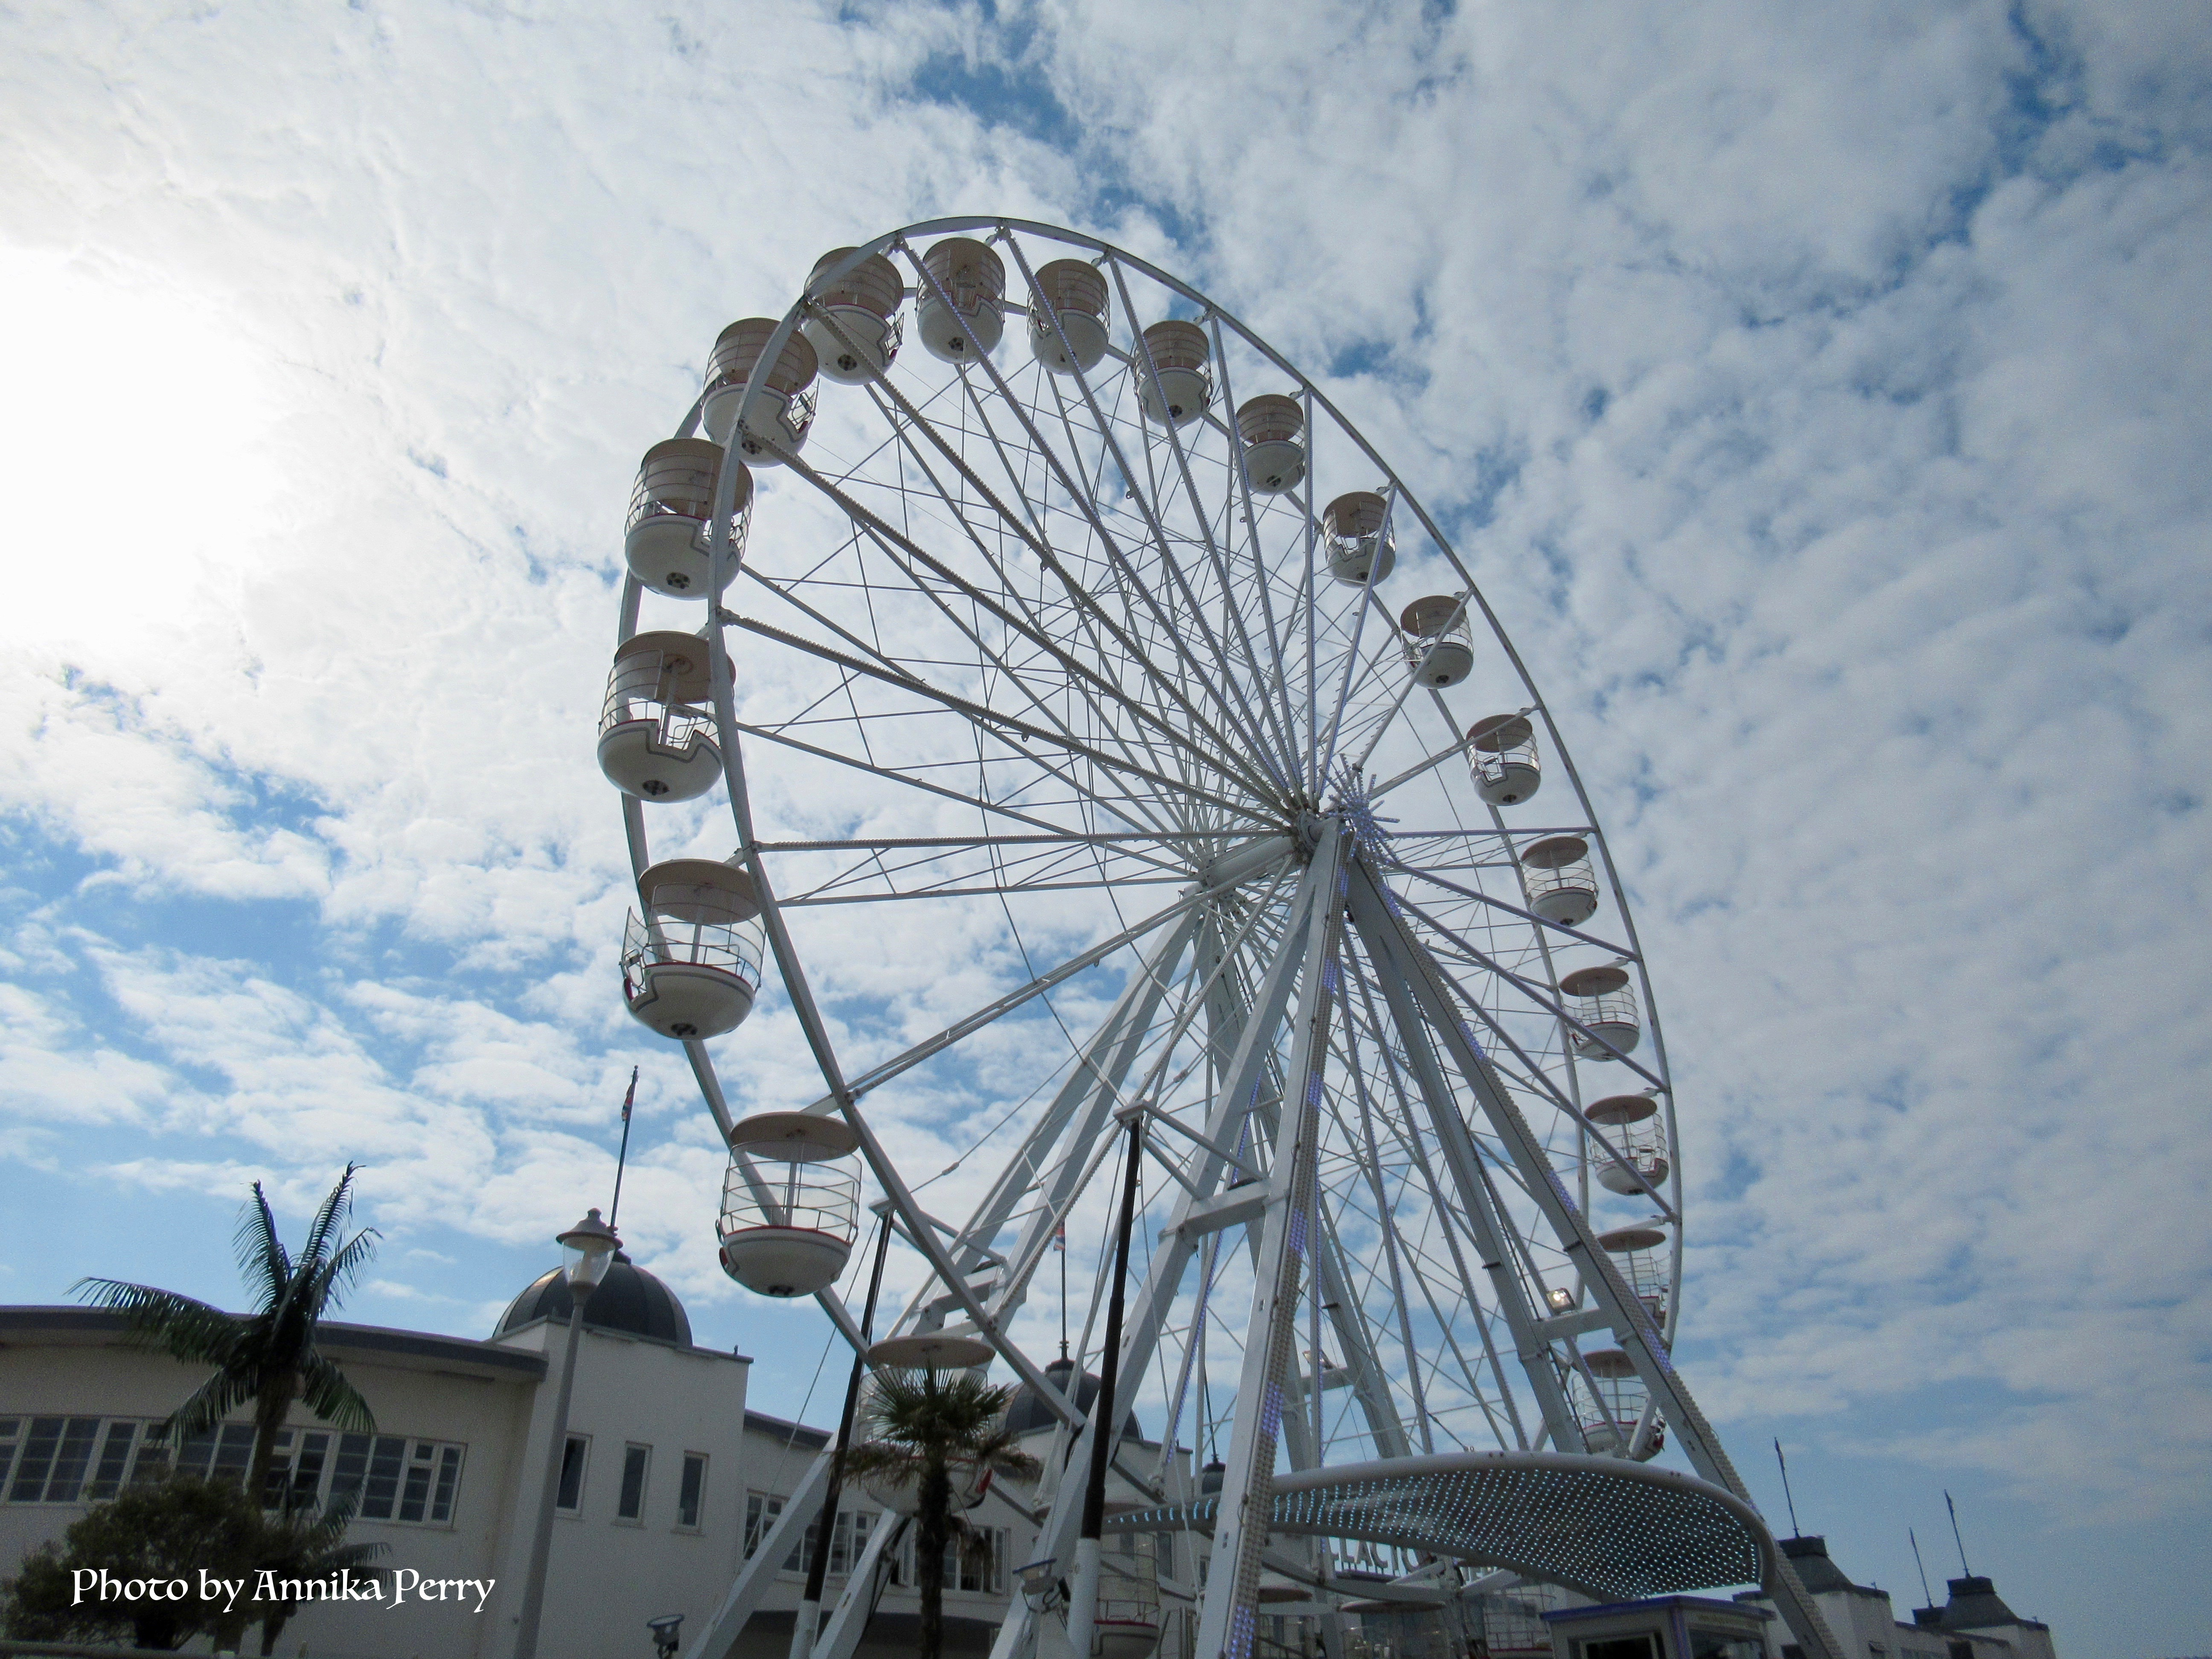 """""""Big wheel ride taken from below against white wispy clouds. Shows its dramatic height."""""""